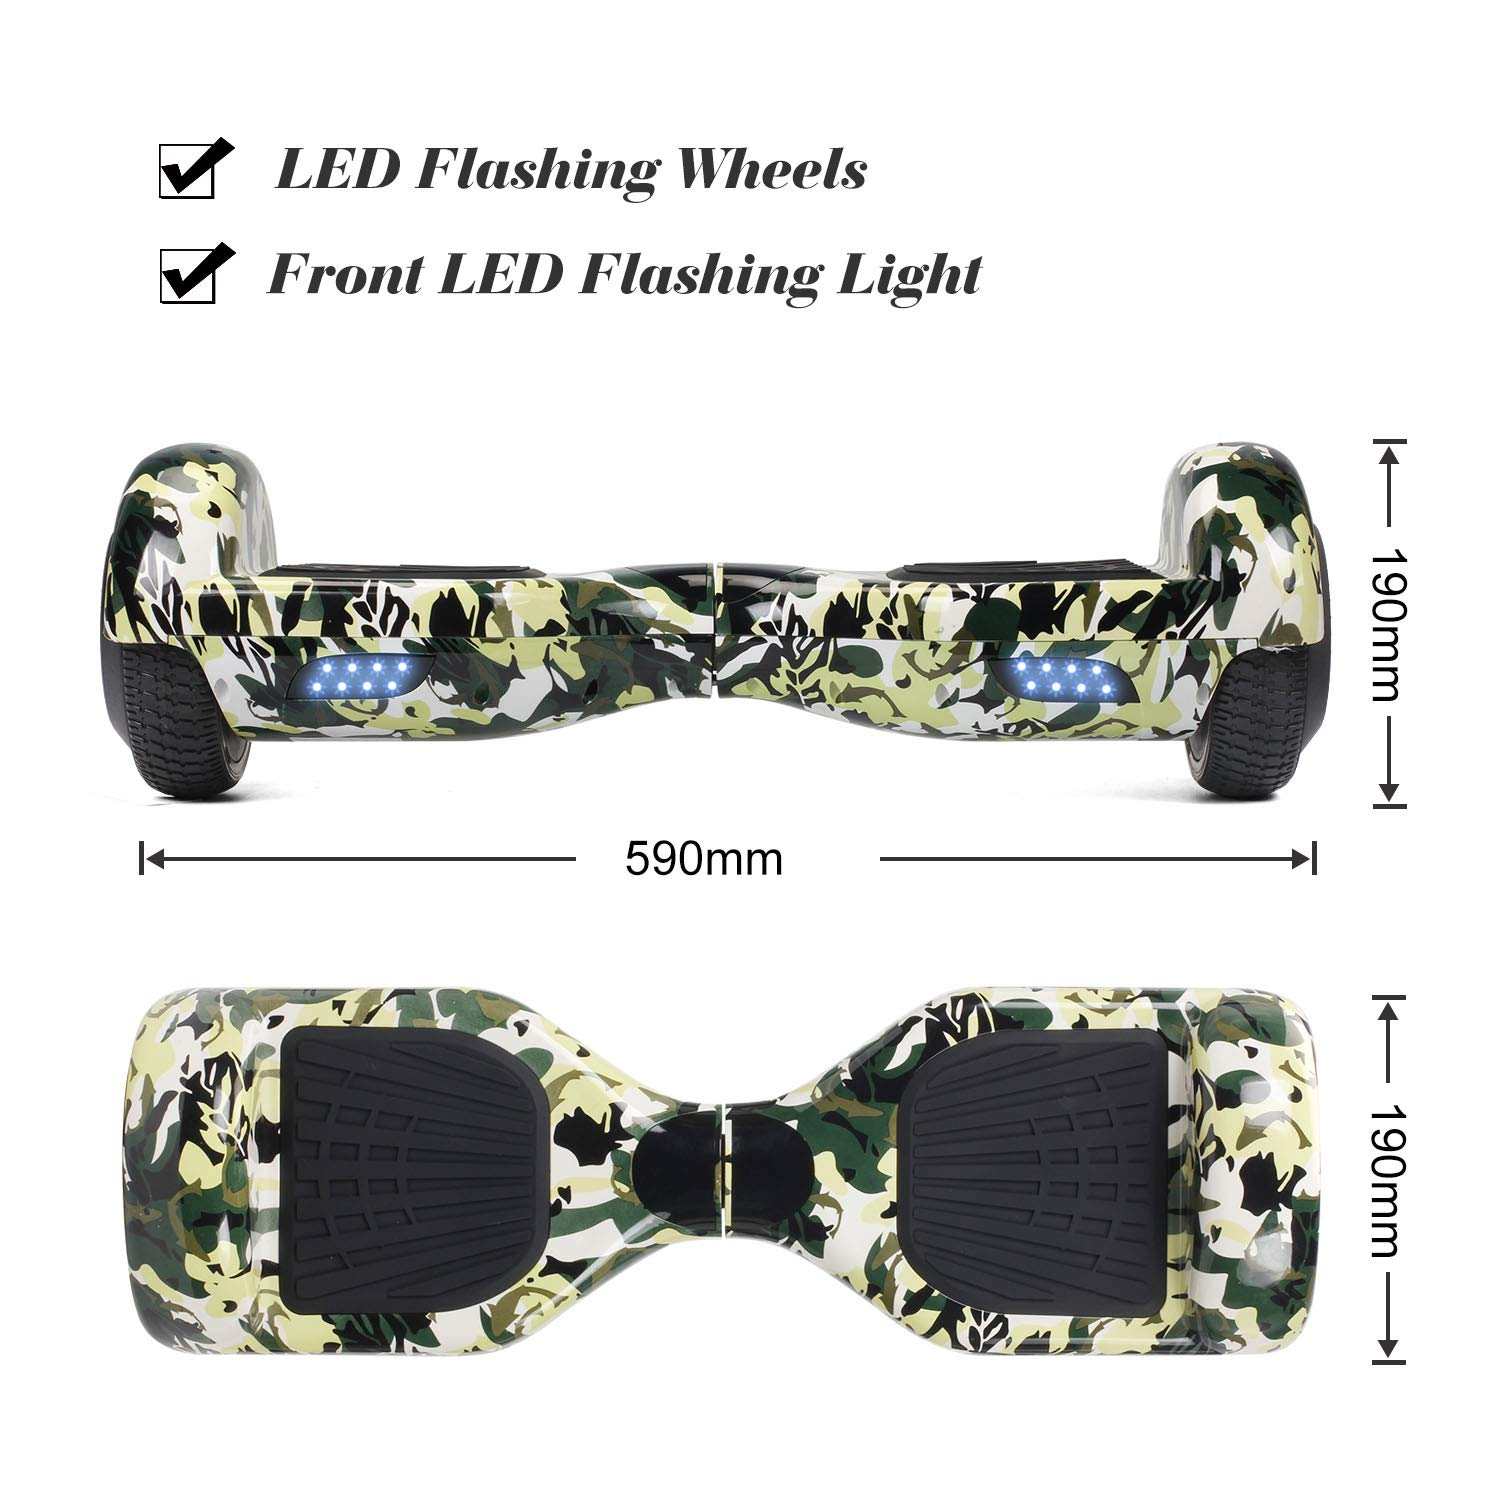 SISIGAD Hoverboard Self Balancing Scooter 6.5'' Two-Wheel Self Balancing Hoverboard with LED Lights Electric Scooter for Adult Kids Gift UL 2272 Certified Fun Edition - Woodland Camo by SISIGAD (Image #2)